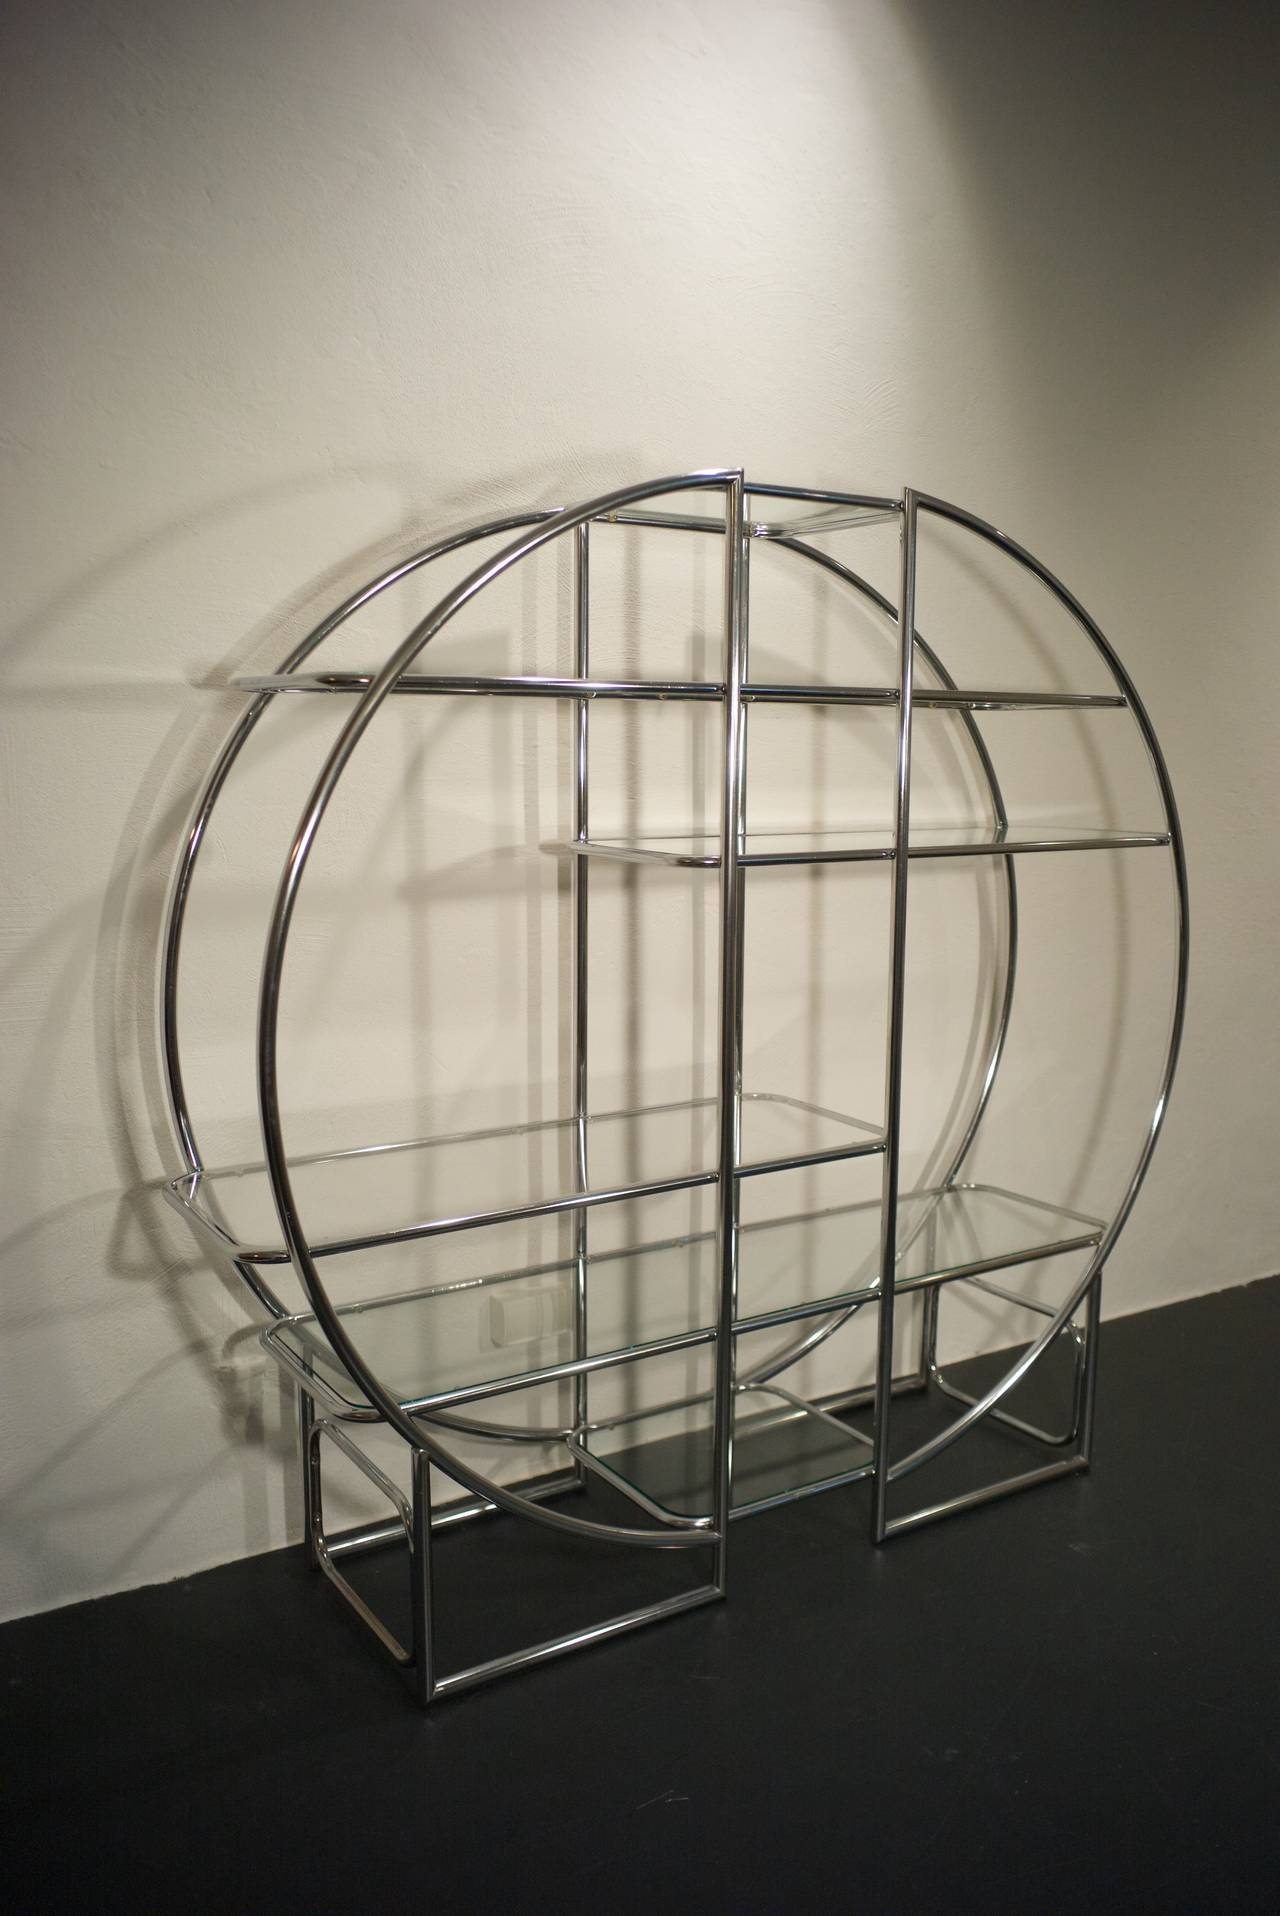 Exceptional circular chrome shelf, which can be placed against a wall, or in the middle of a room, to act as a room divider. It has six glass shelves, all in an excellent condition.